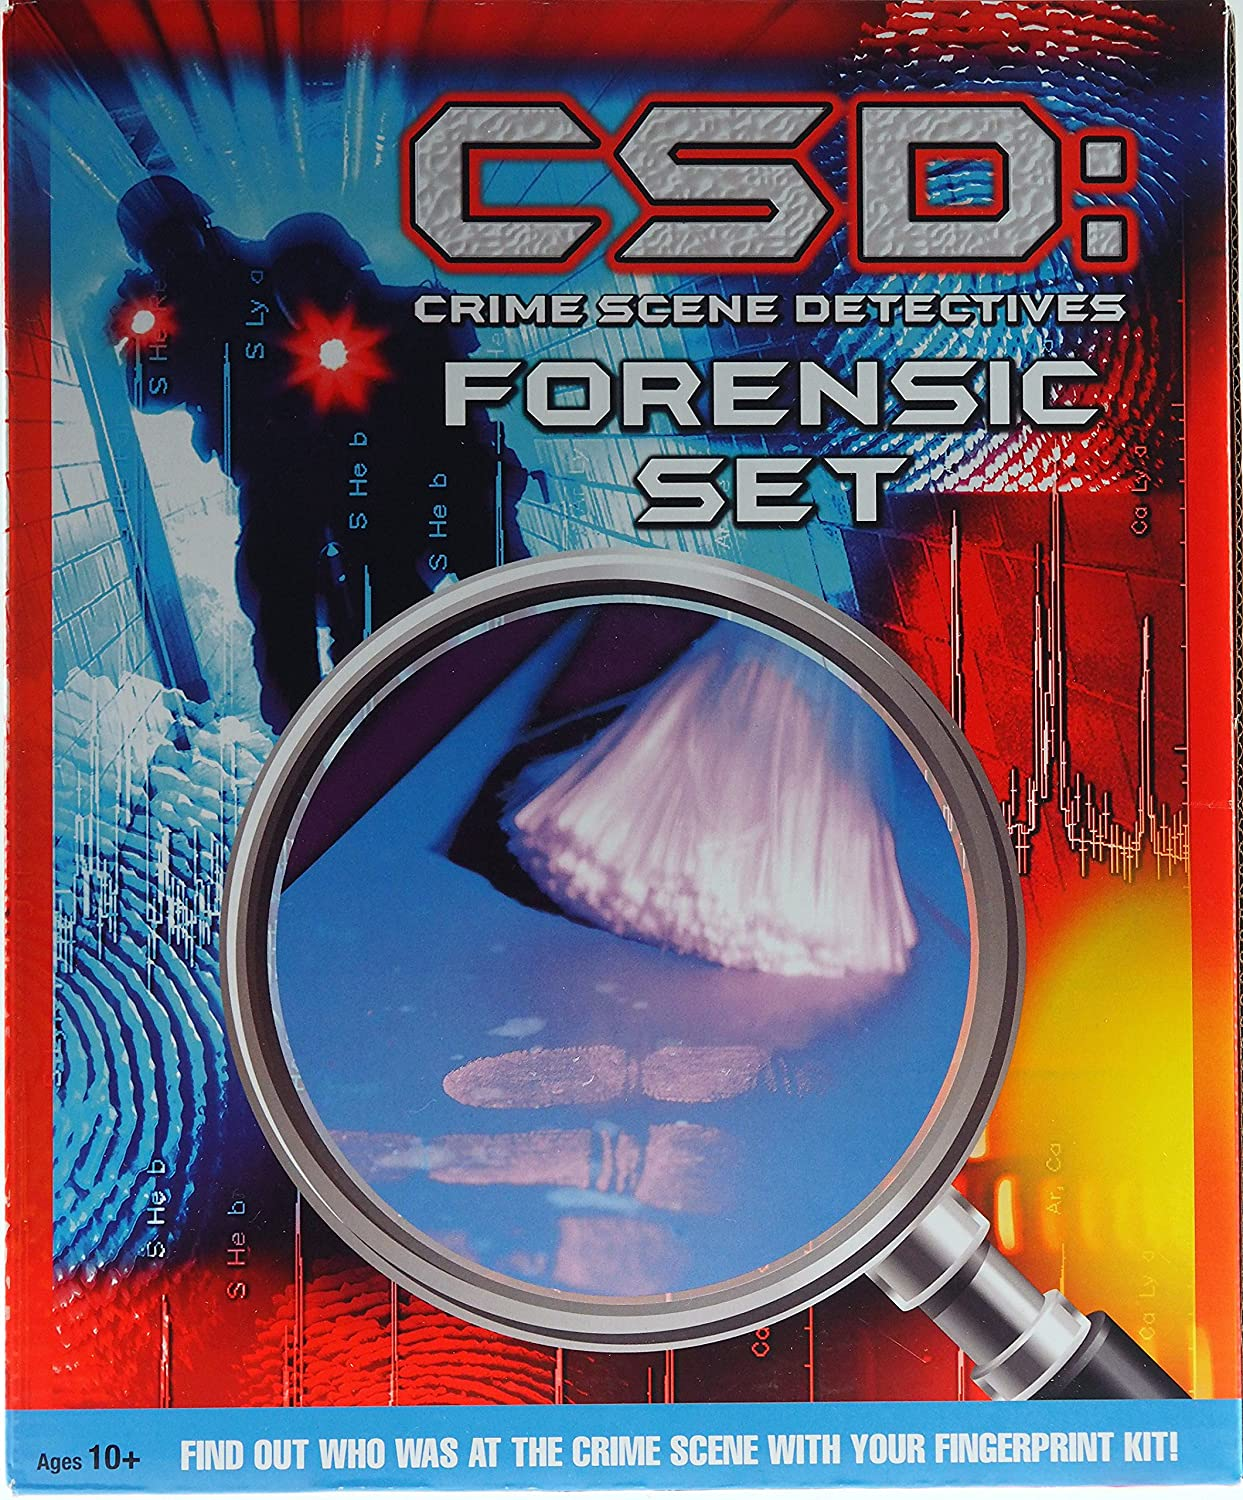 Buy Bwg Csd Forensic Science Set Kid S Finger Print Kit Online At Low Prices In India Amazon In